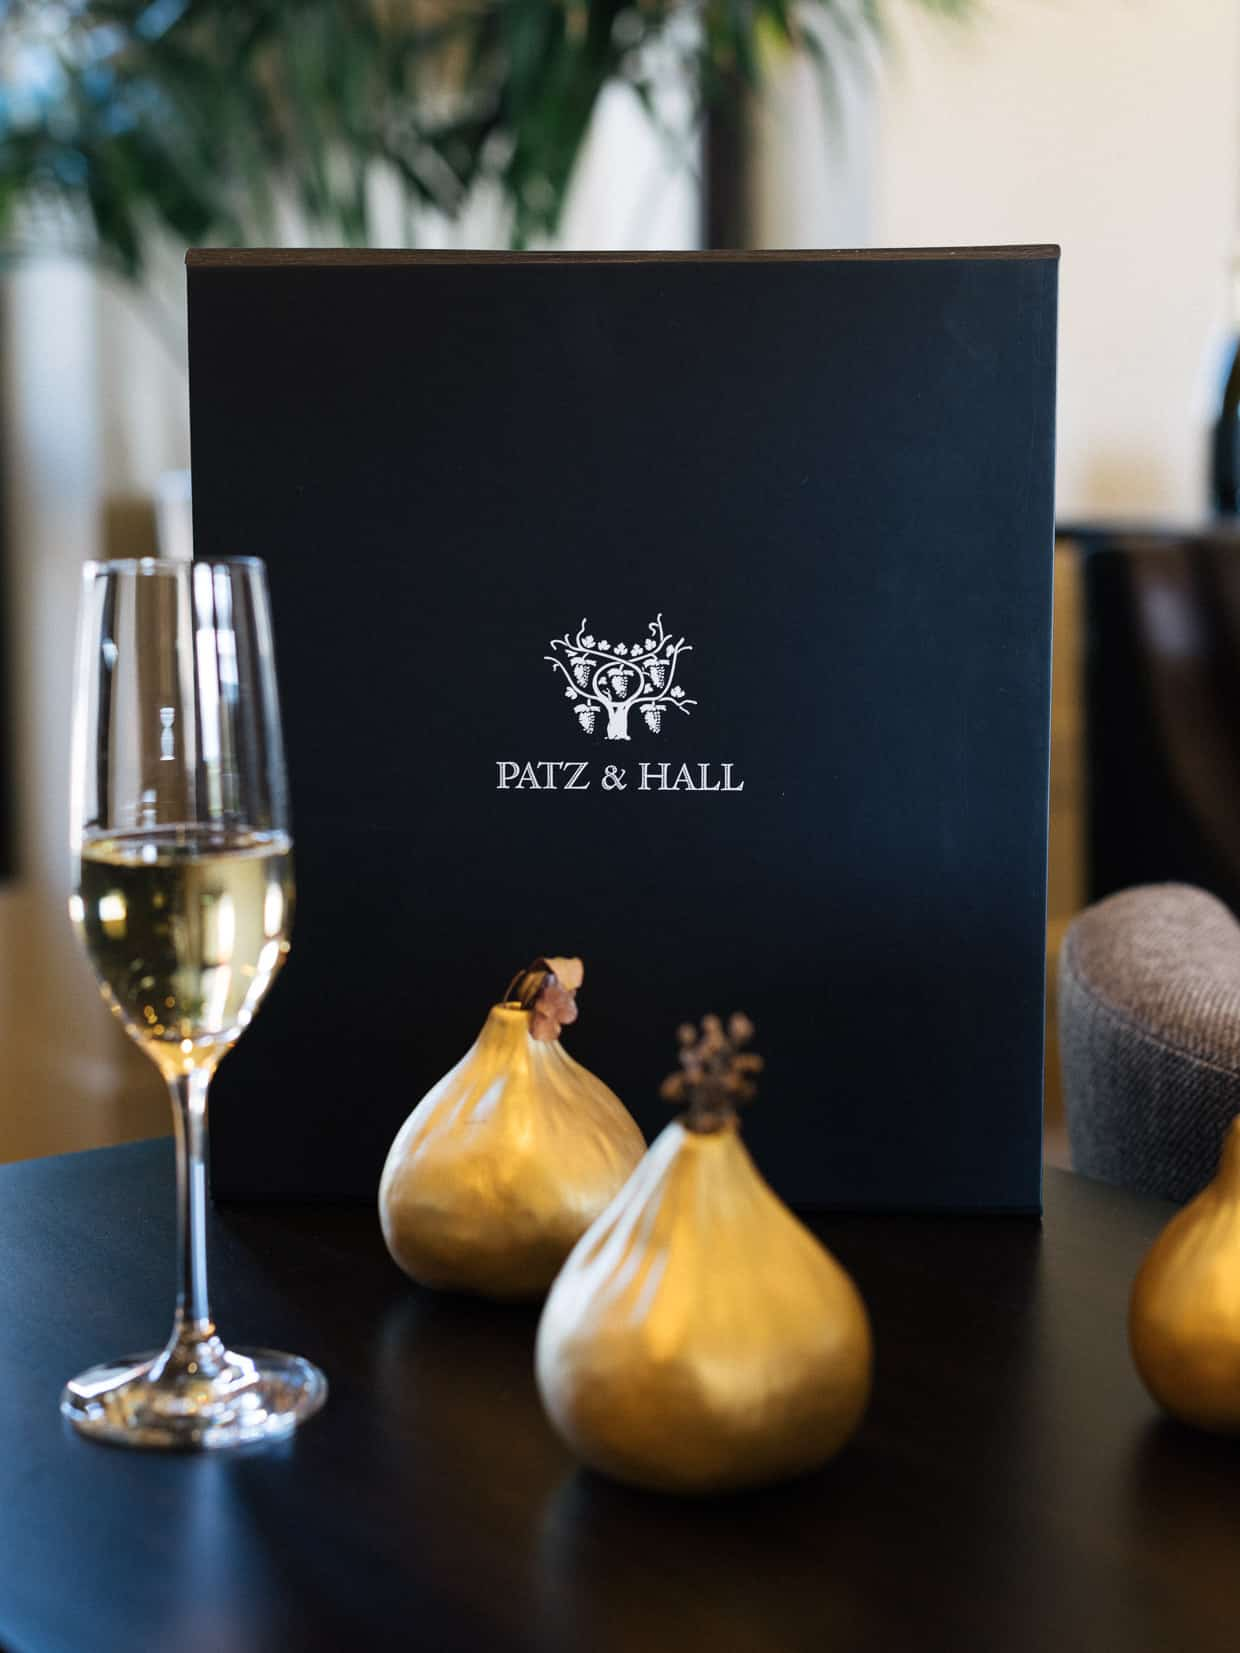 A Taste of Sonoma: A Weekend Visitor's Guide - Patz & Hall provides a unique tasting when in wine country.